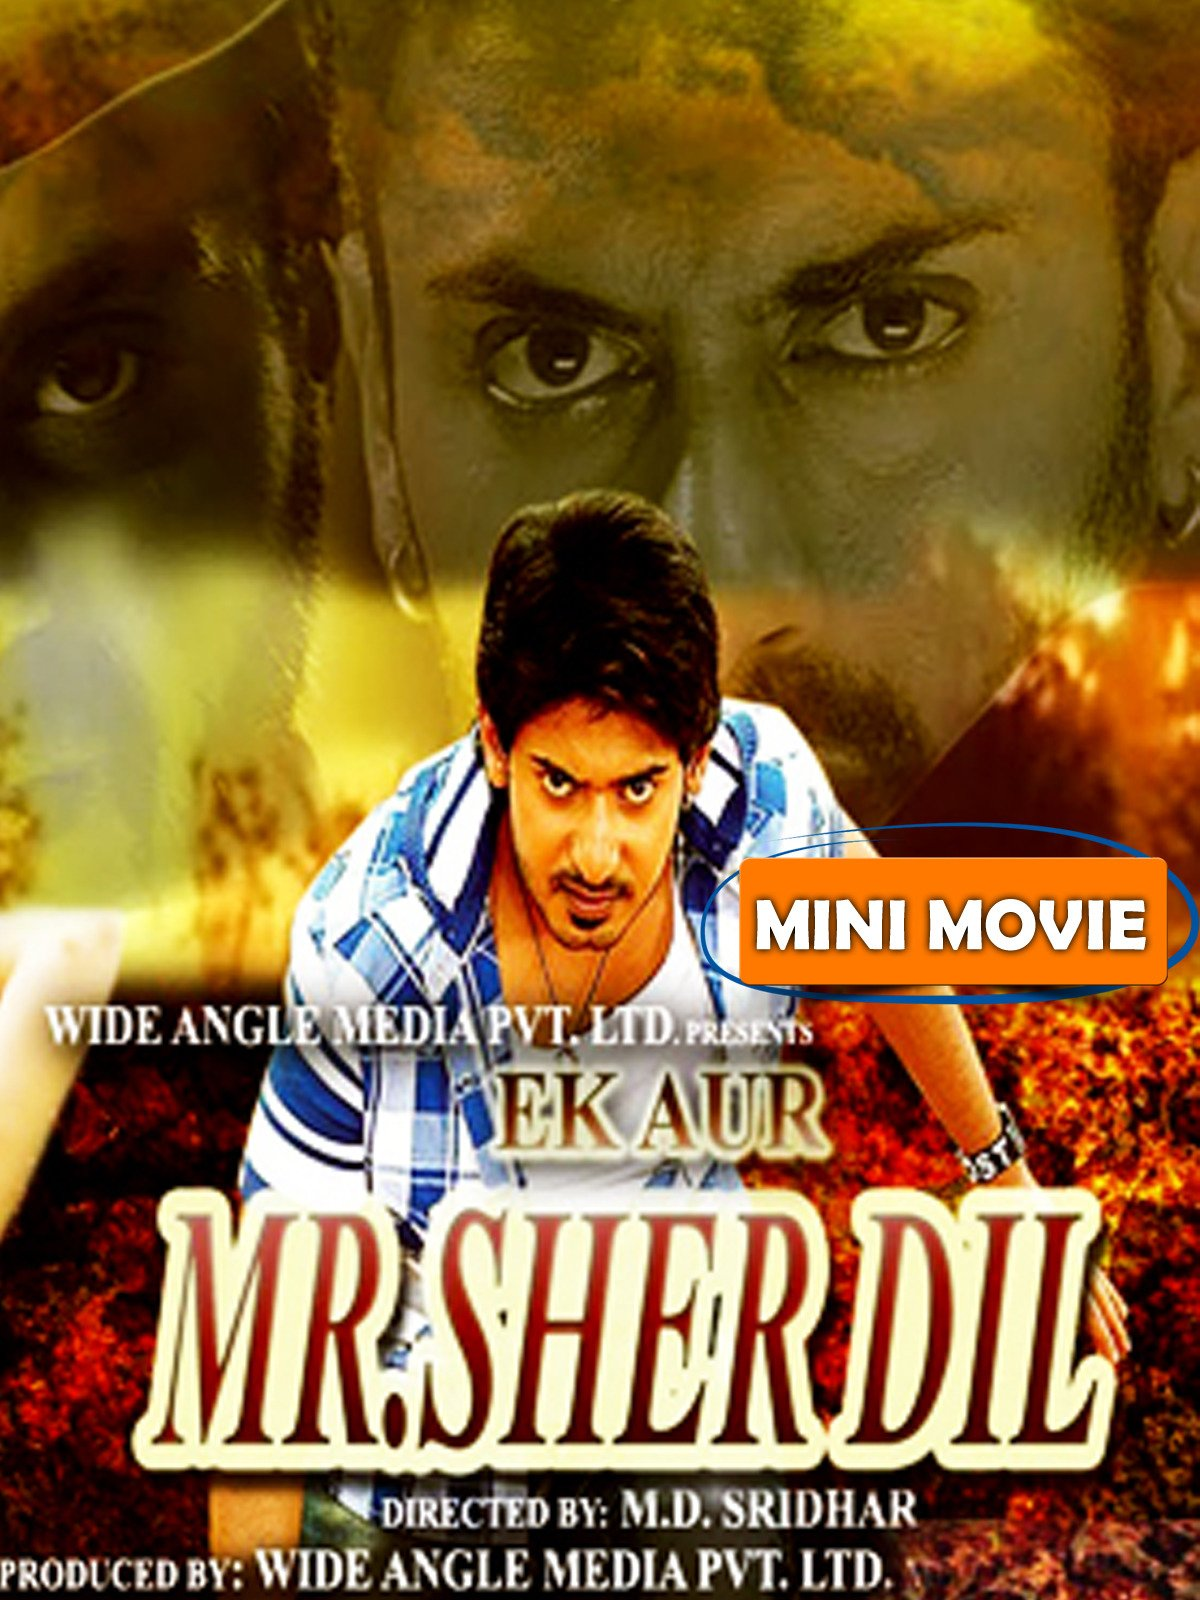 Ek Aur Mr. Sherdil